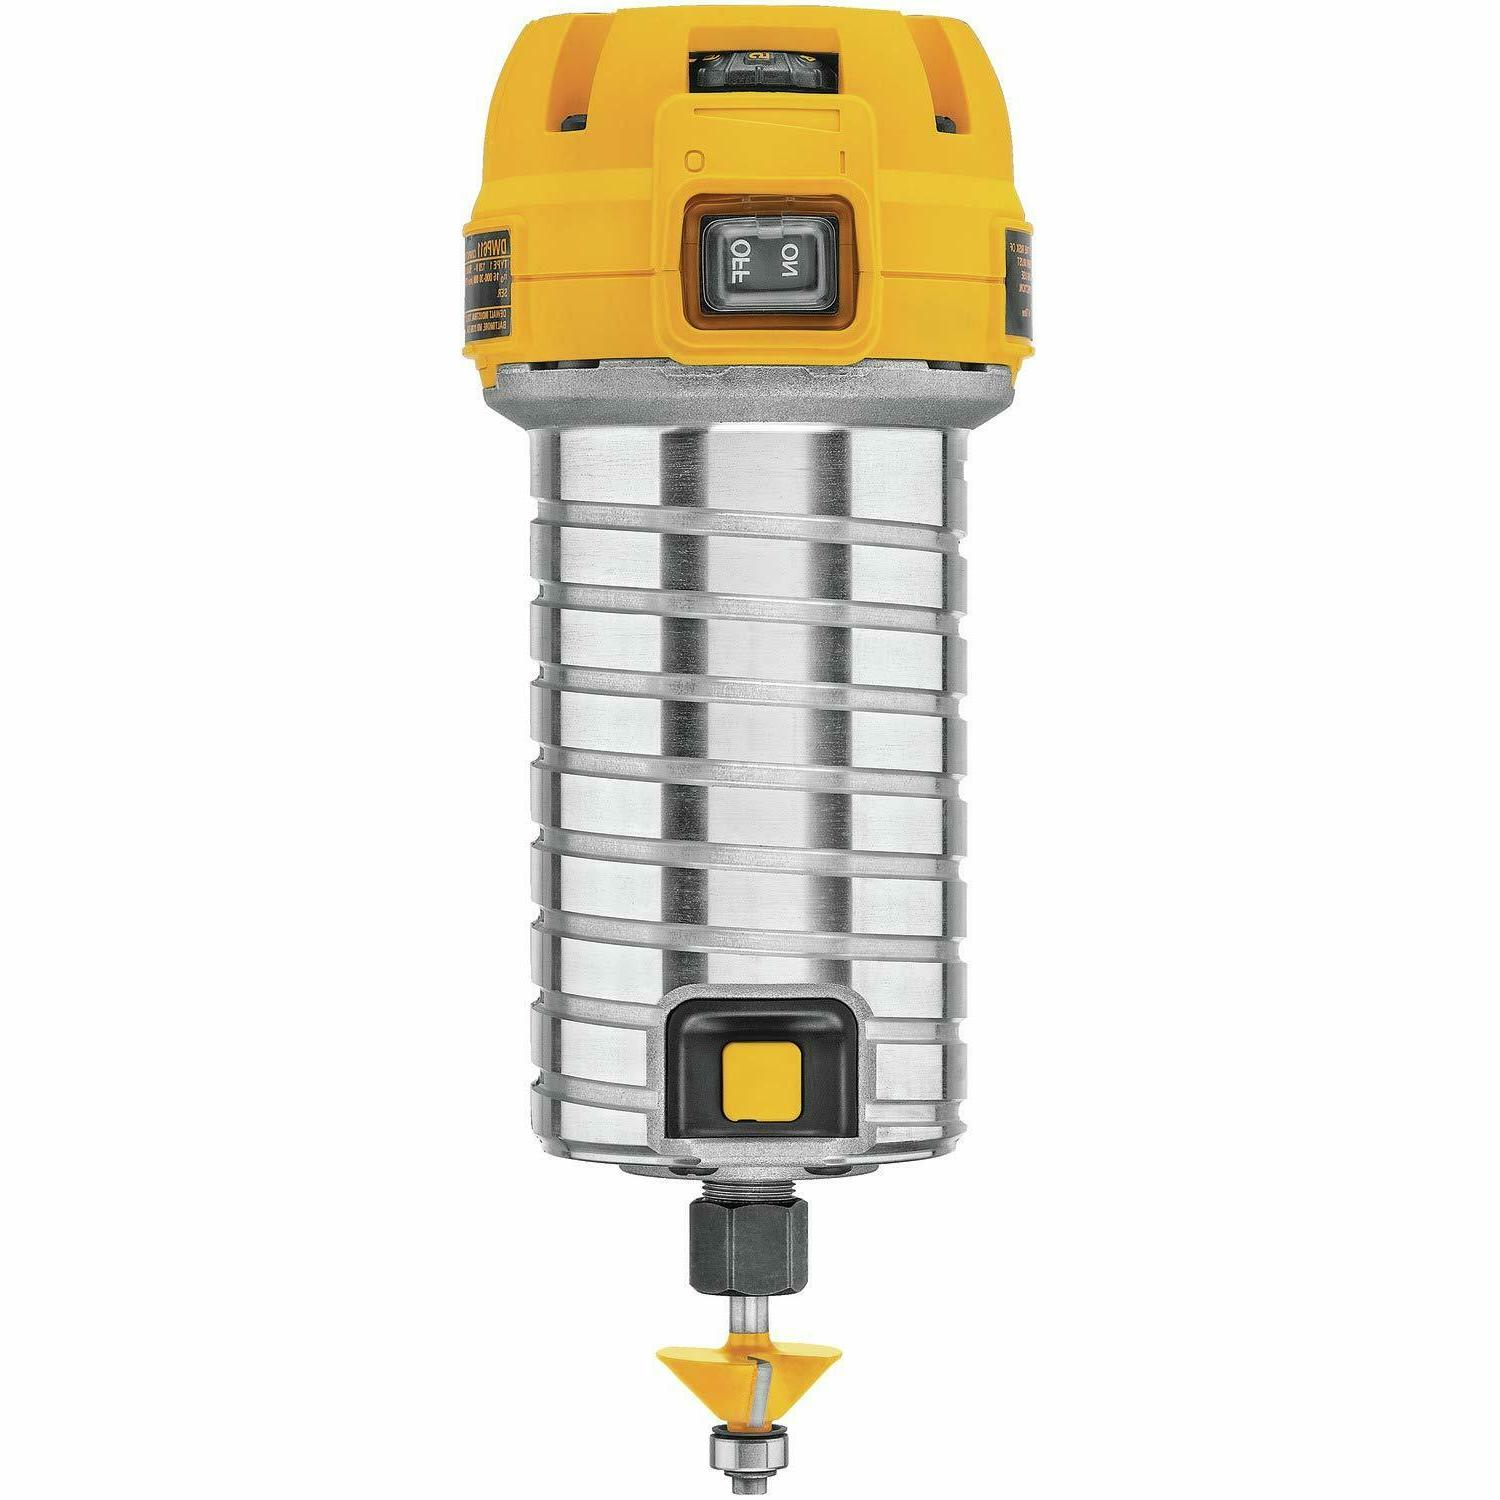 NEW DEWALT Max Variable HP Compact DWP611 LED